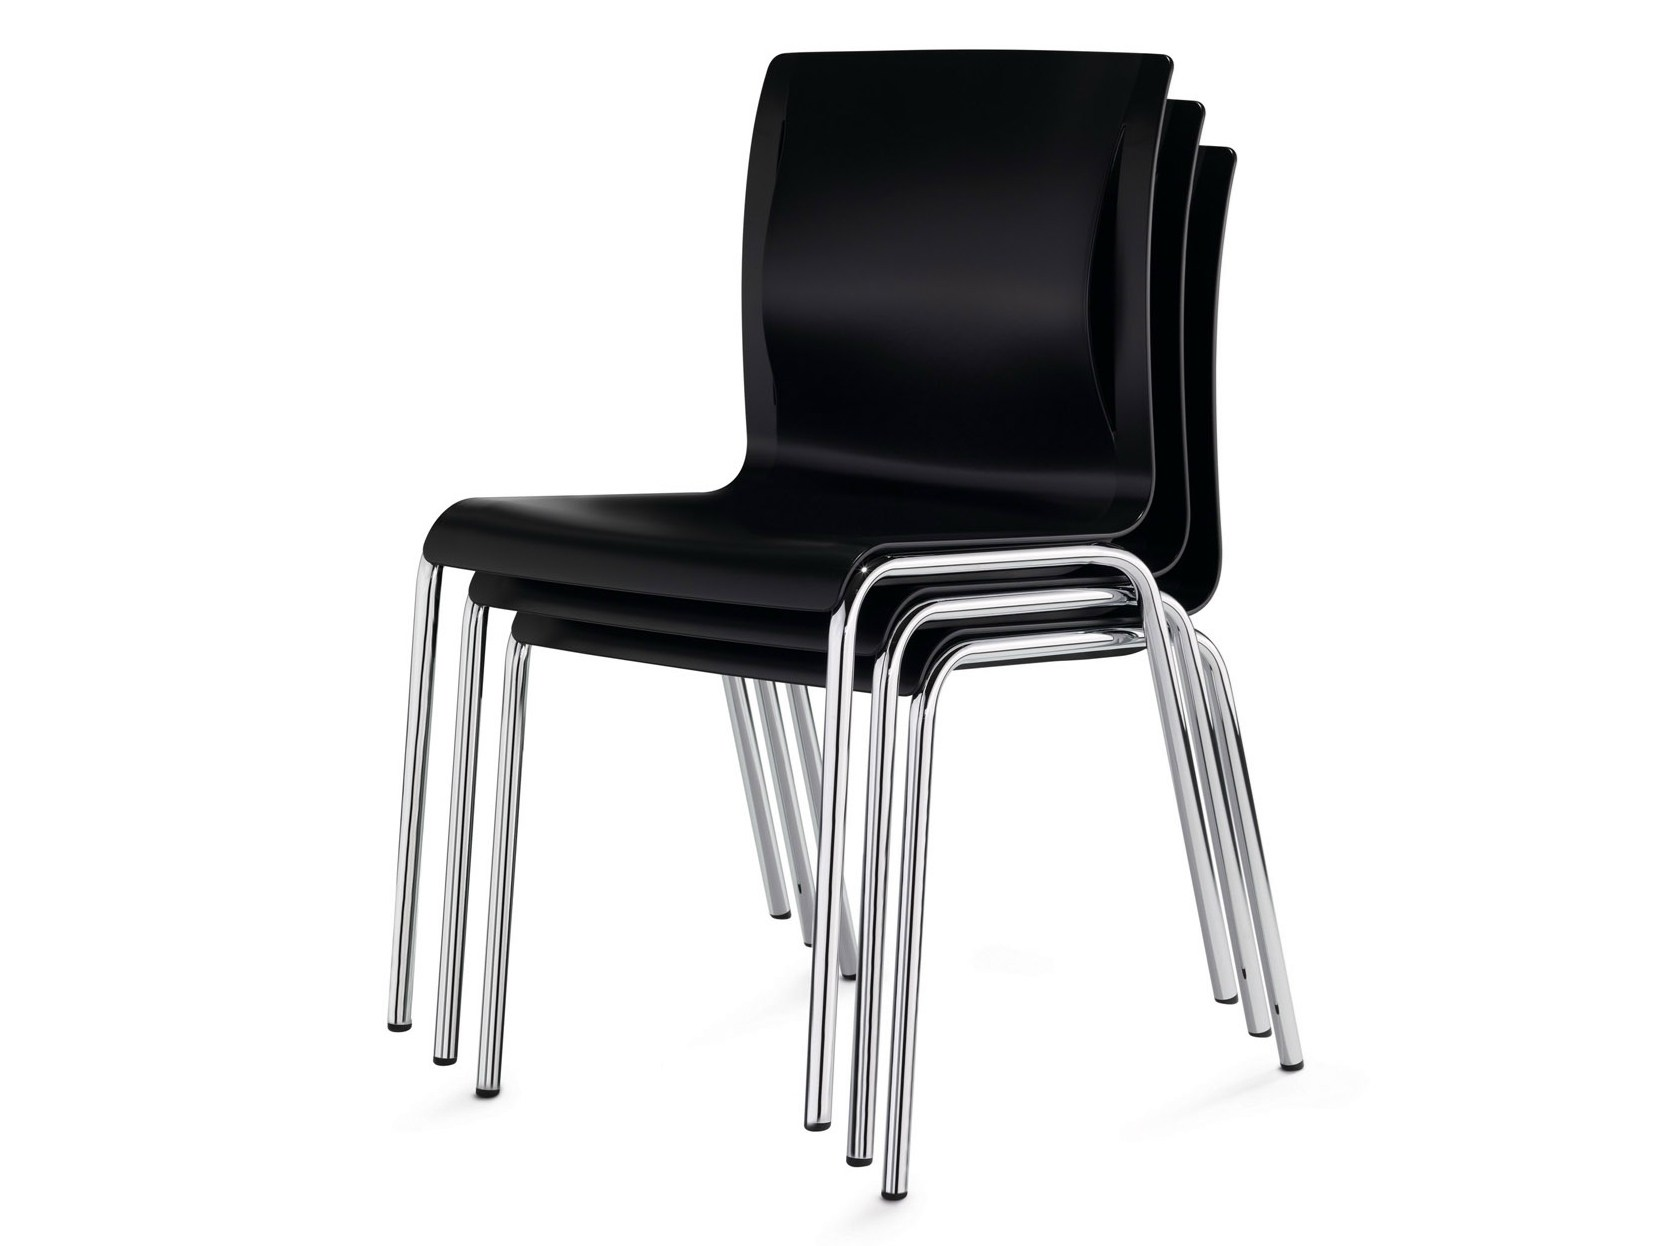 stackable reception chair juventa by k nig neurath. Black Bedroom Furniture Sets. Home Design Ideas